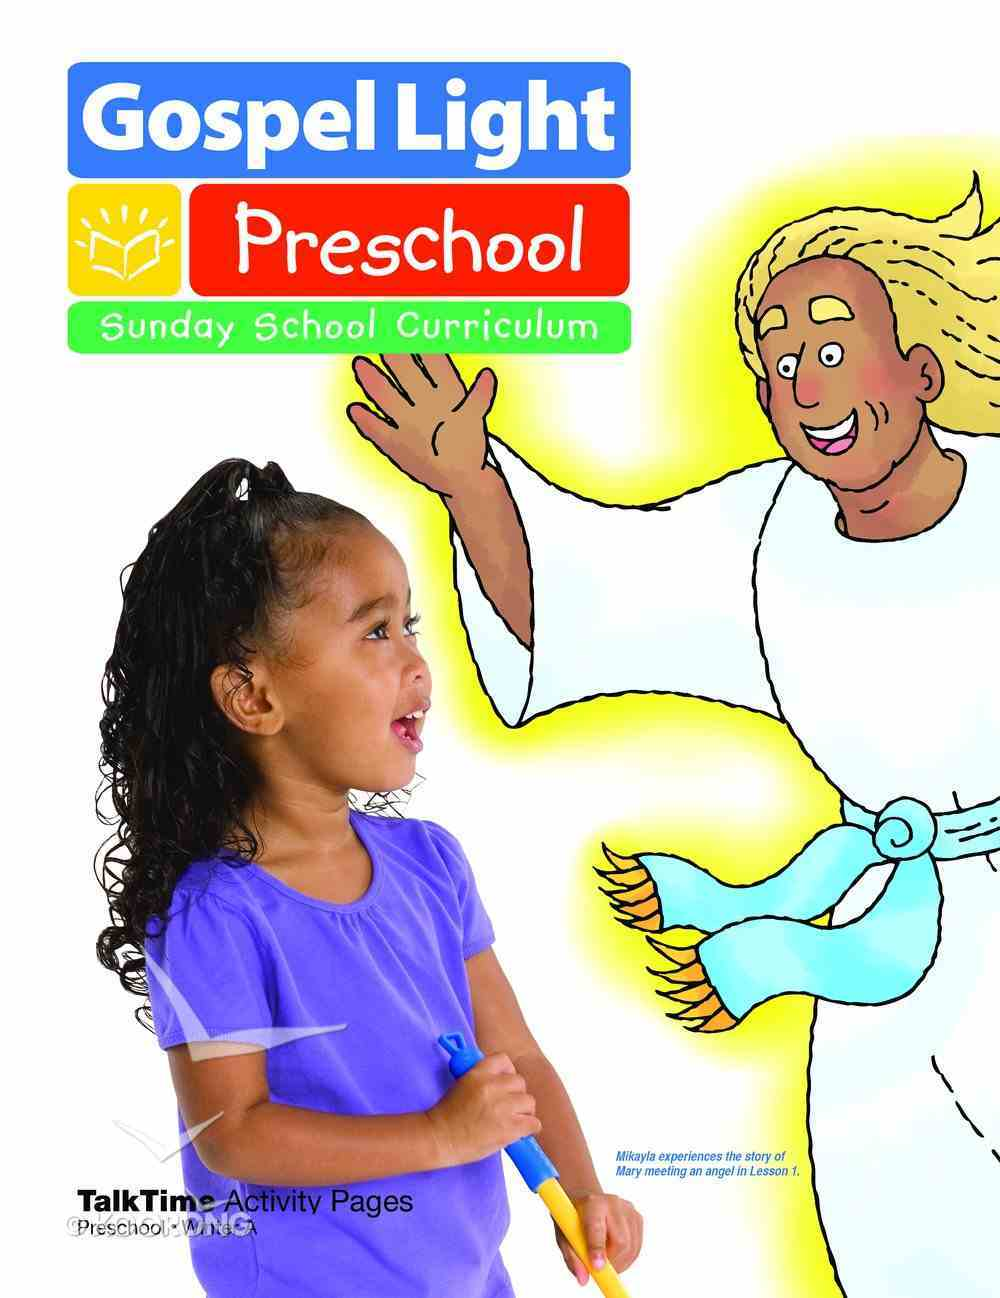 Winter a 2020 Ages 2/3 Talktime Activity Pages (Gospel Light Living Word Series) Paperback